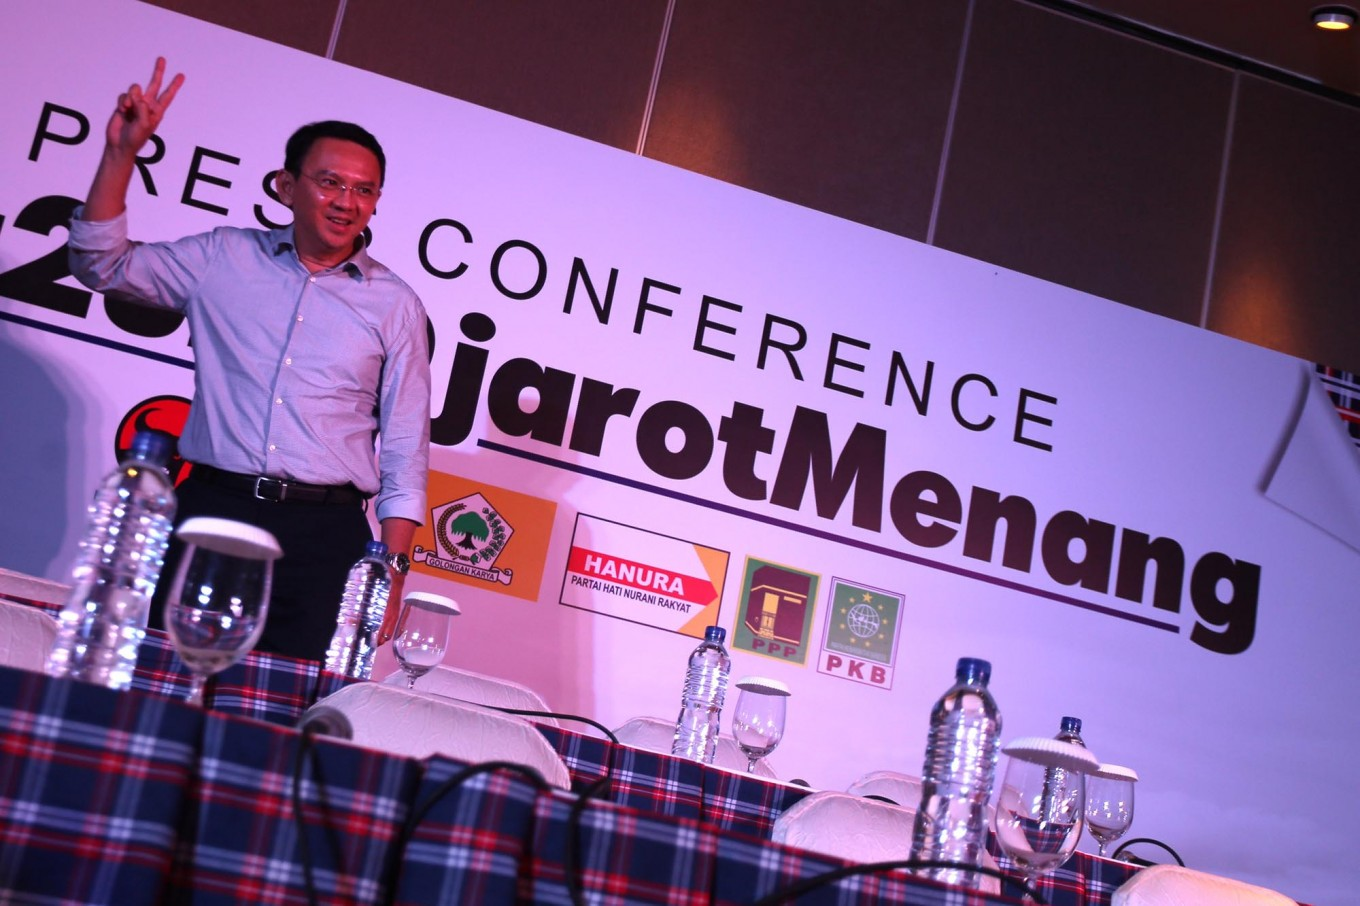 Ahok concedes defeat, calls on supporters to move on